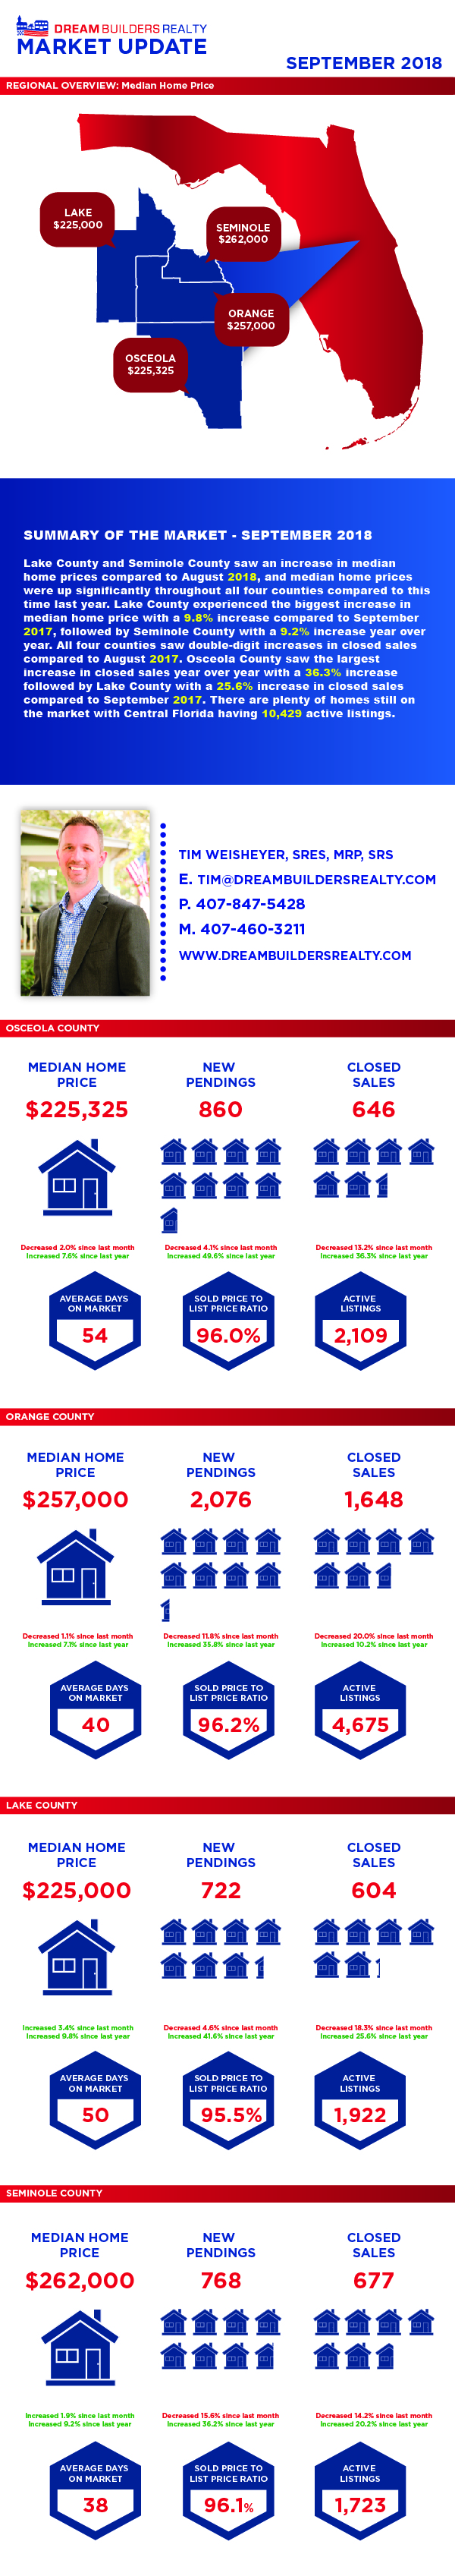 Central Florida Market Report Real Estate September 2018 Dream Builders Realty